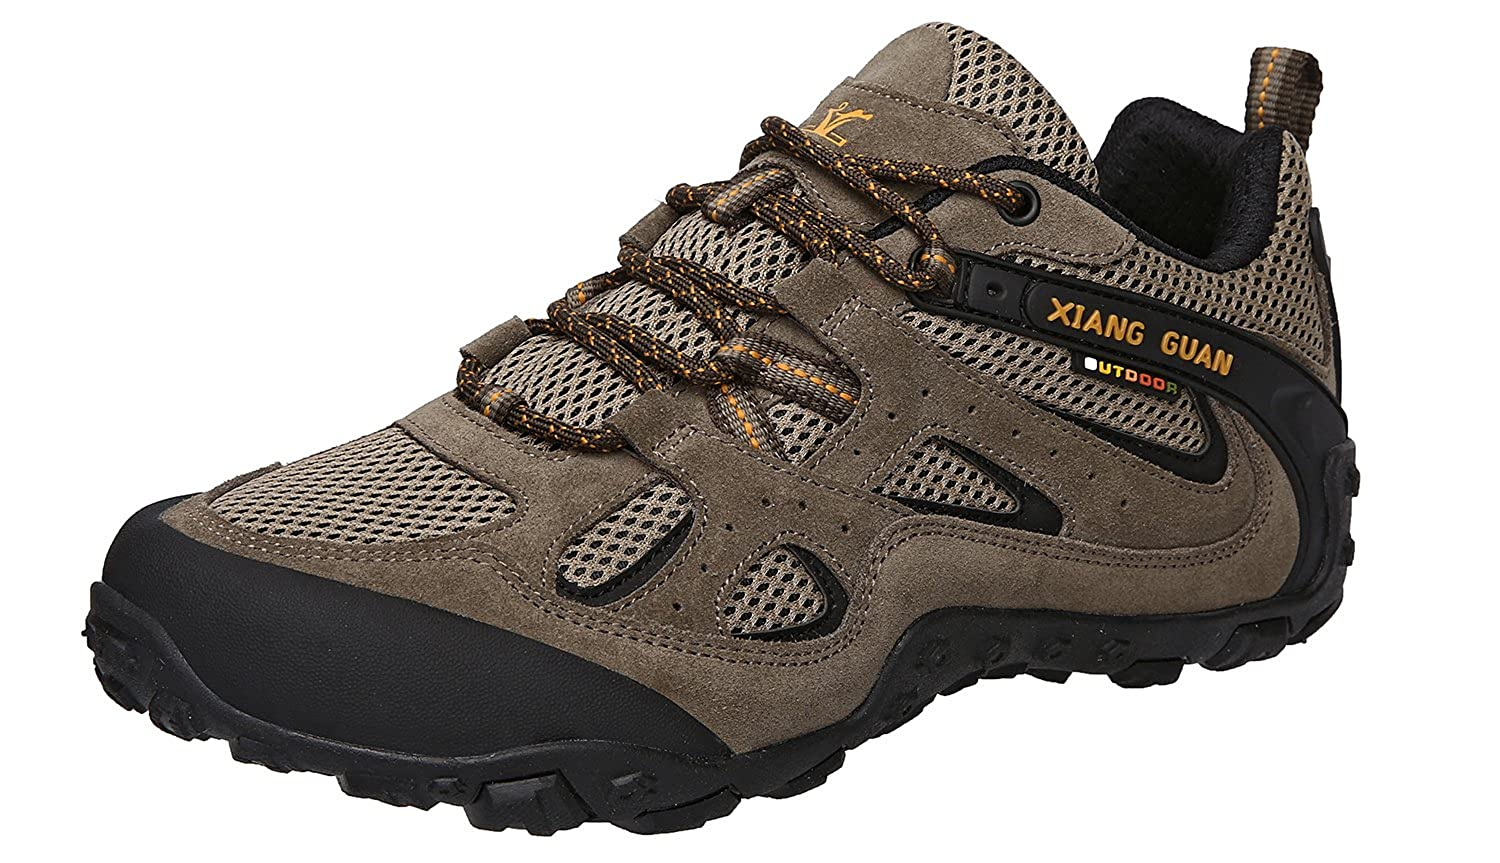 XIANG GUAN Men's Outdoor Low-Top Lightweight Trekking Hiking Shoes